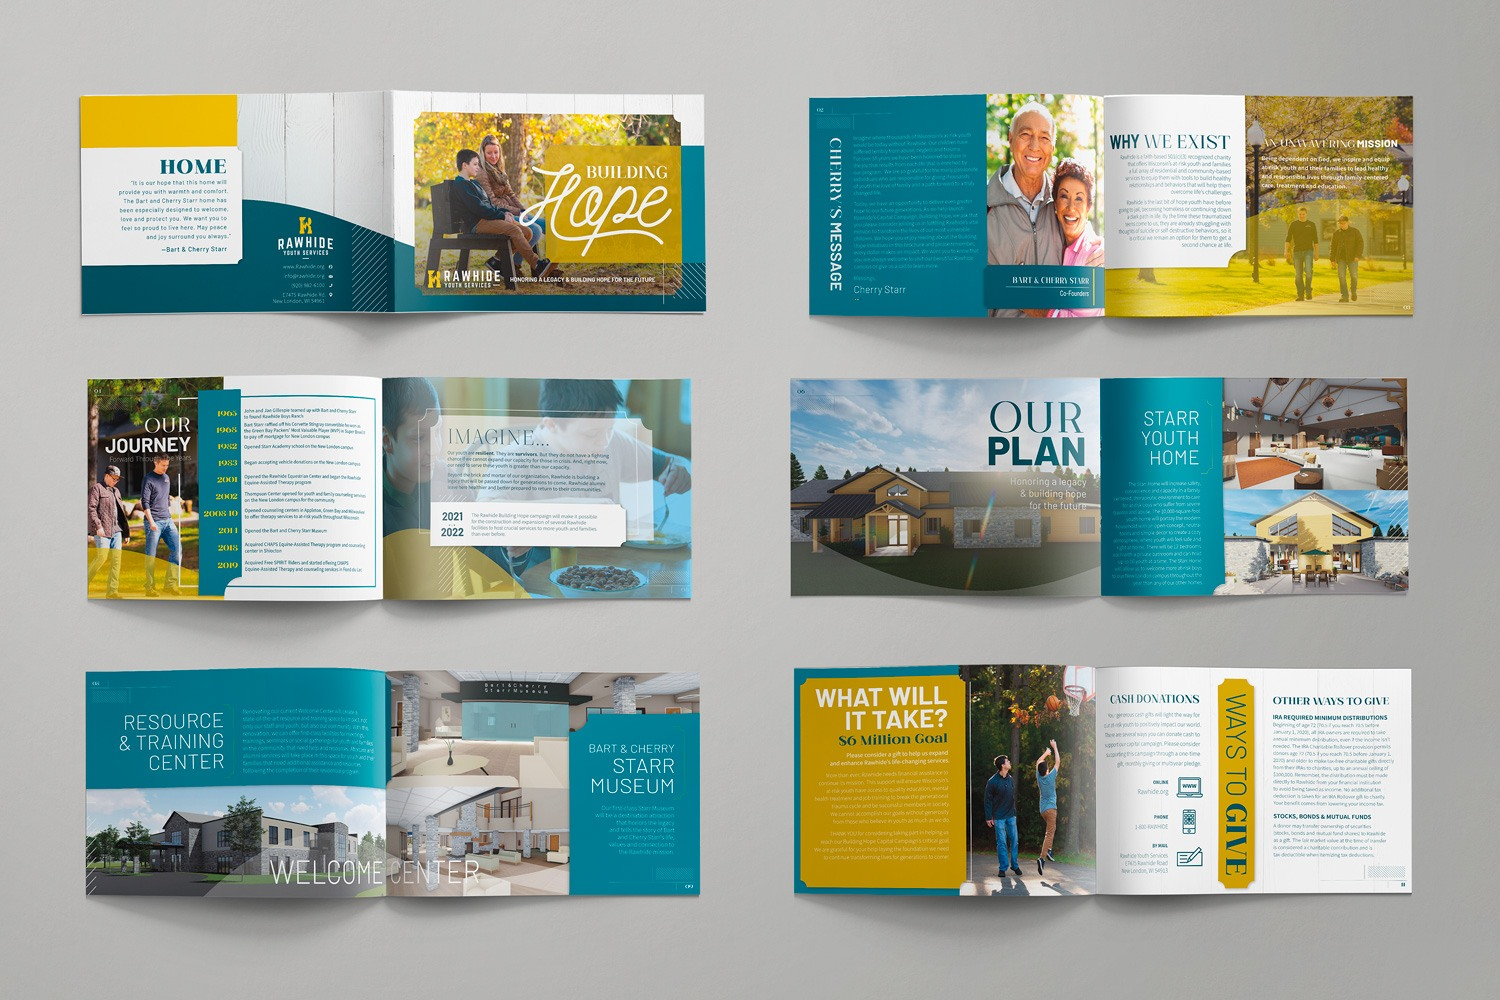 12-Page Multipage case statement for nonprofit capital campaign for Rawhide Inc. by Abstract Union